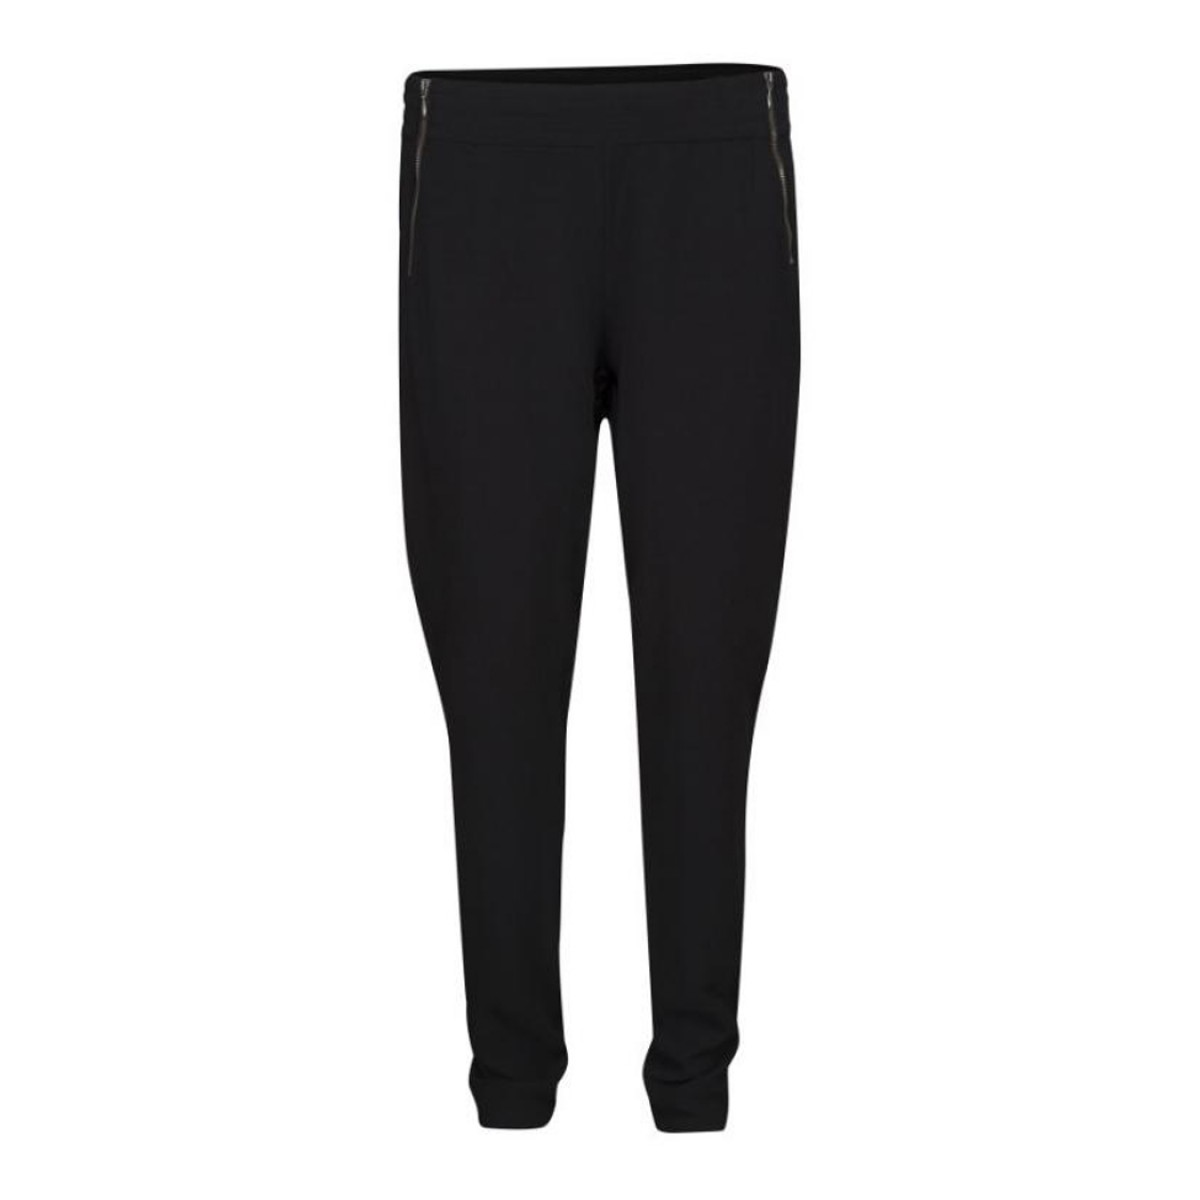 Sofie Schnoor S161276 Pants Black-32